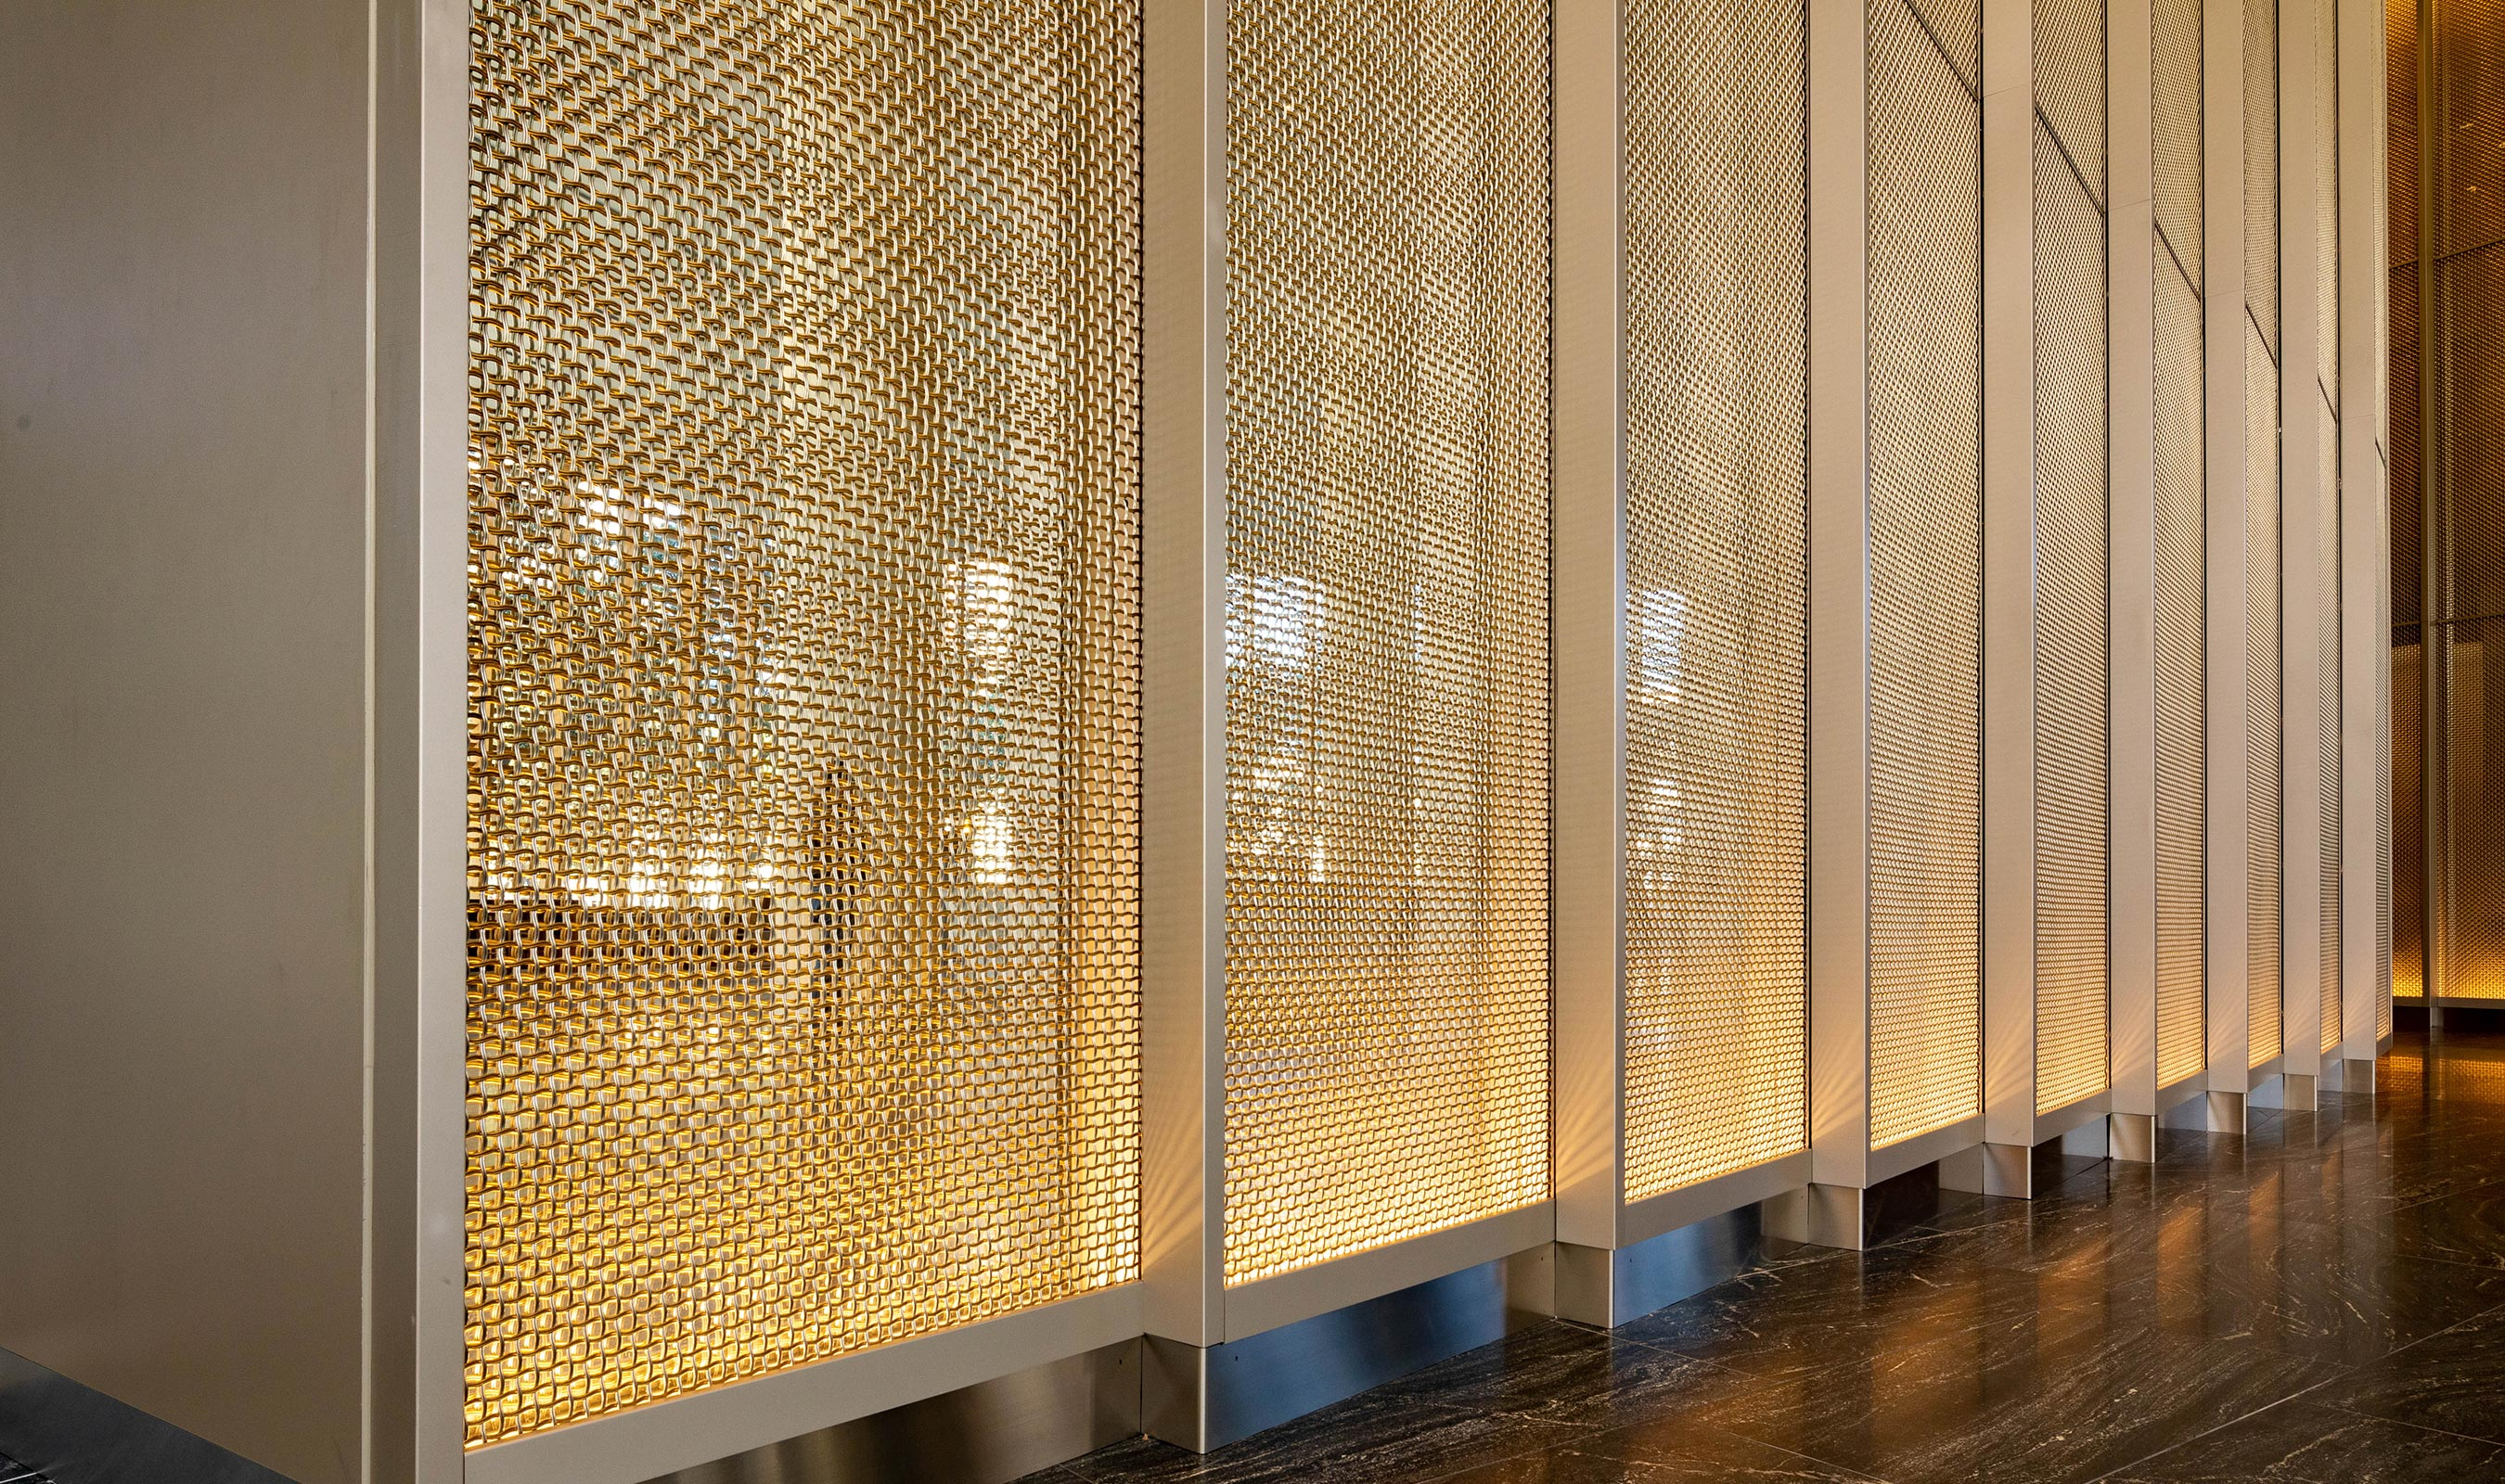 Specialty lighting enchances the visual interest of Banker Wire's M22-80 woven wire mesh in stainless steel and brass.